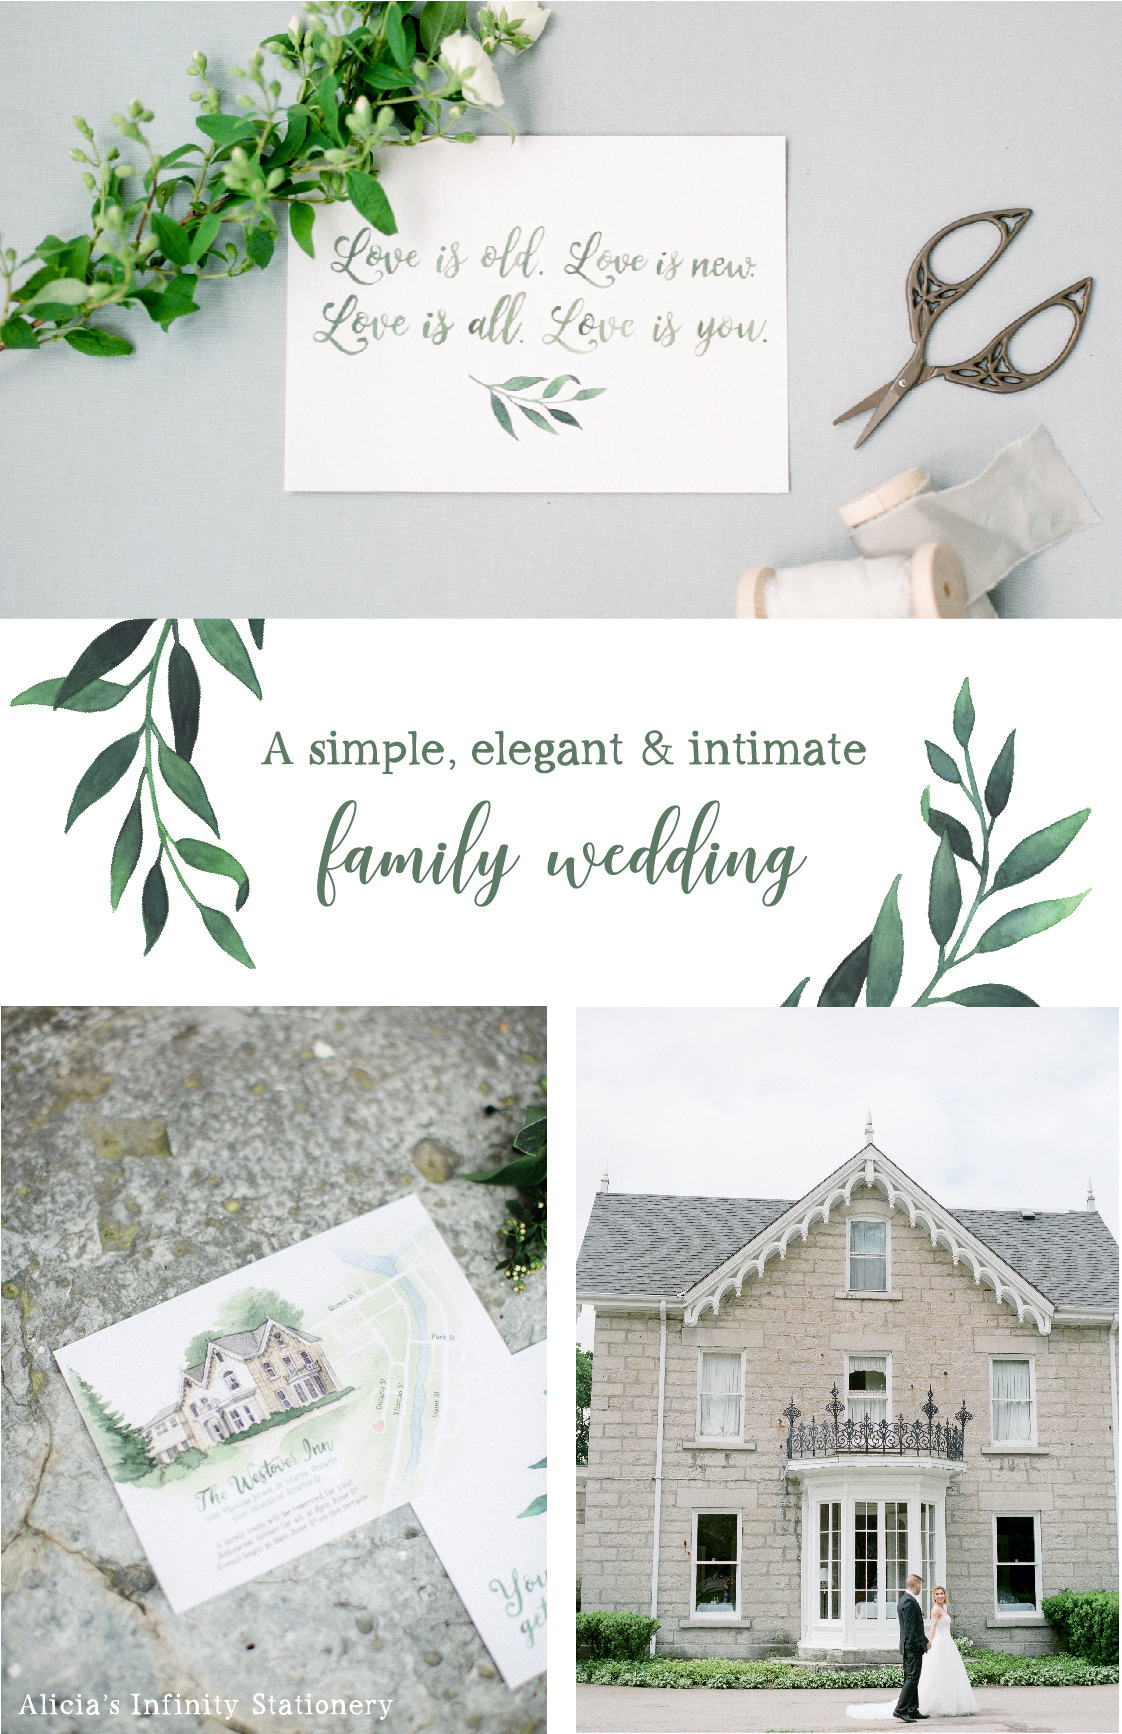 Alicias-Infinity-Wedding-Invitations-Stationery-Small-Family-Wedding-01.jpg